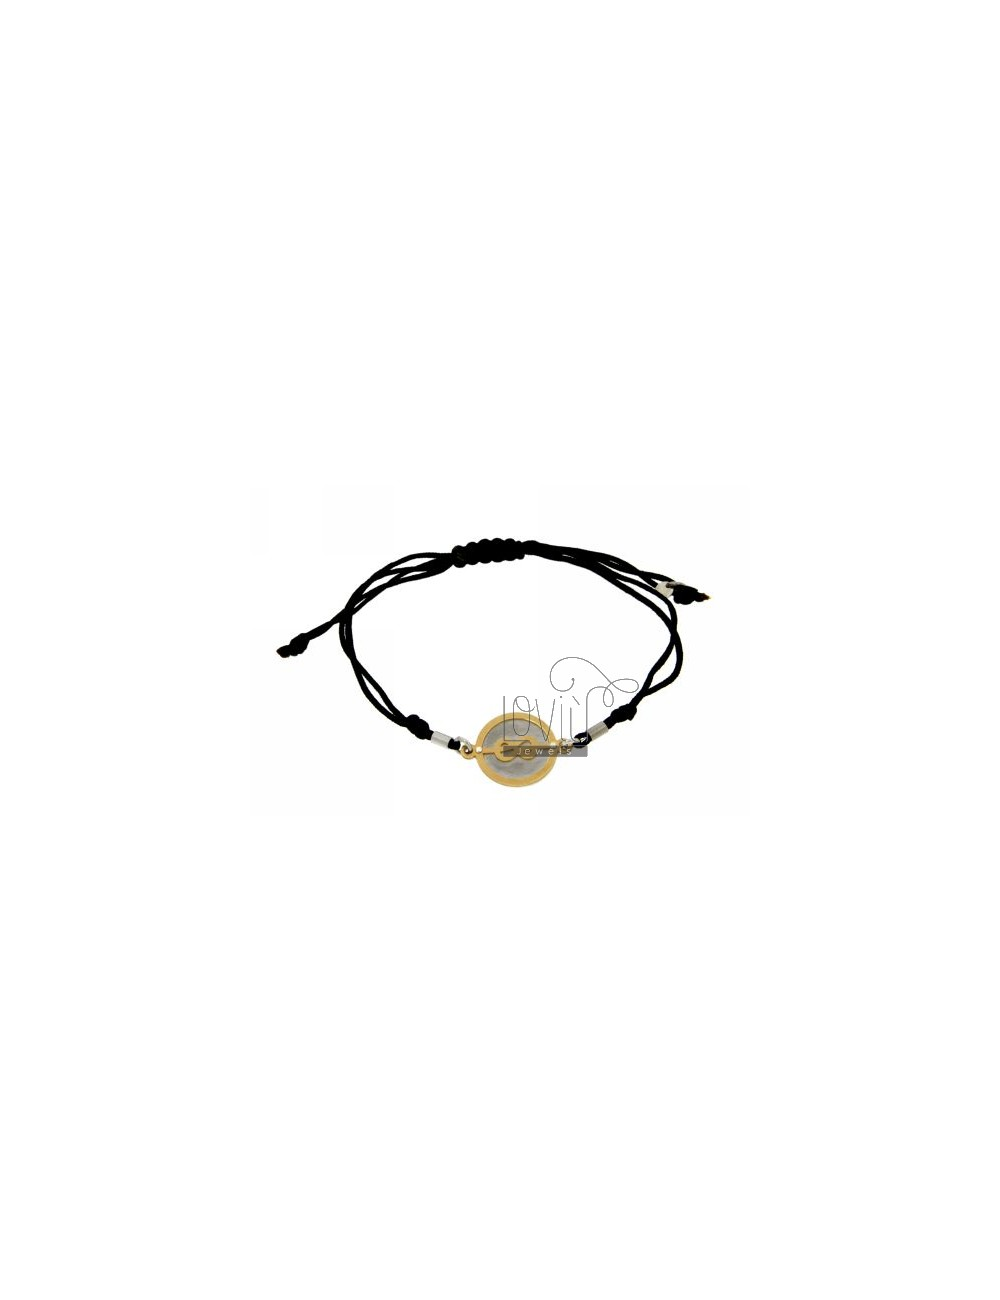 STRING BRACELET AND NECKLACE WITH ROUND SAILOR KNOT GOLD PLATED SILVER 925